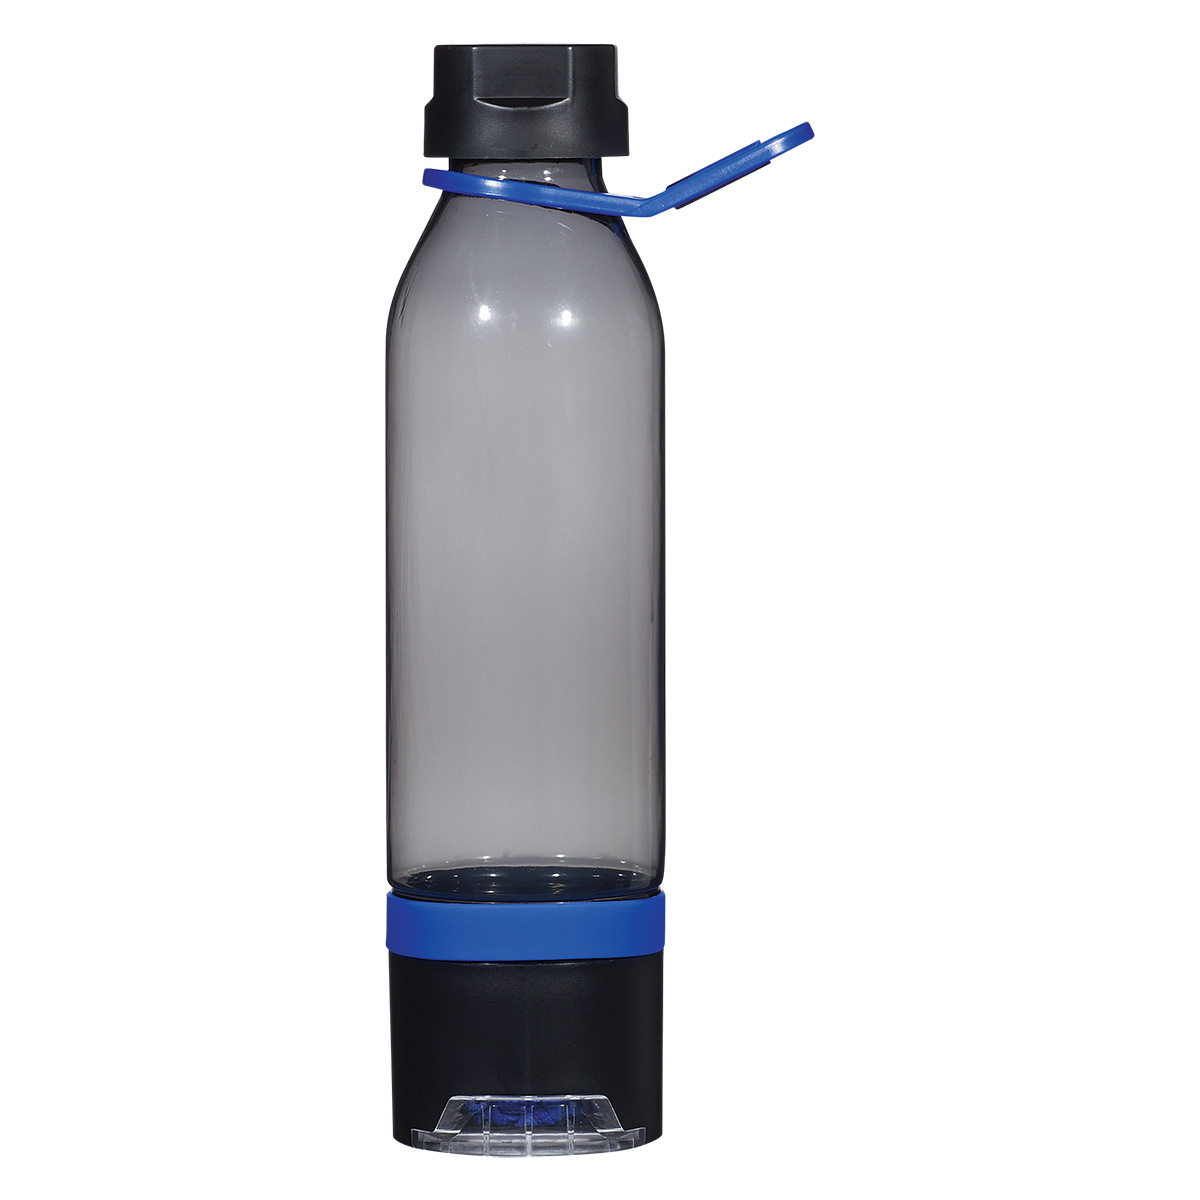 #CM 5875 - 15 Oz. Energy Sports Bottle With Phone Holder